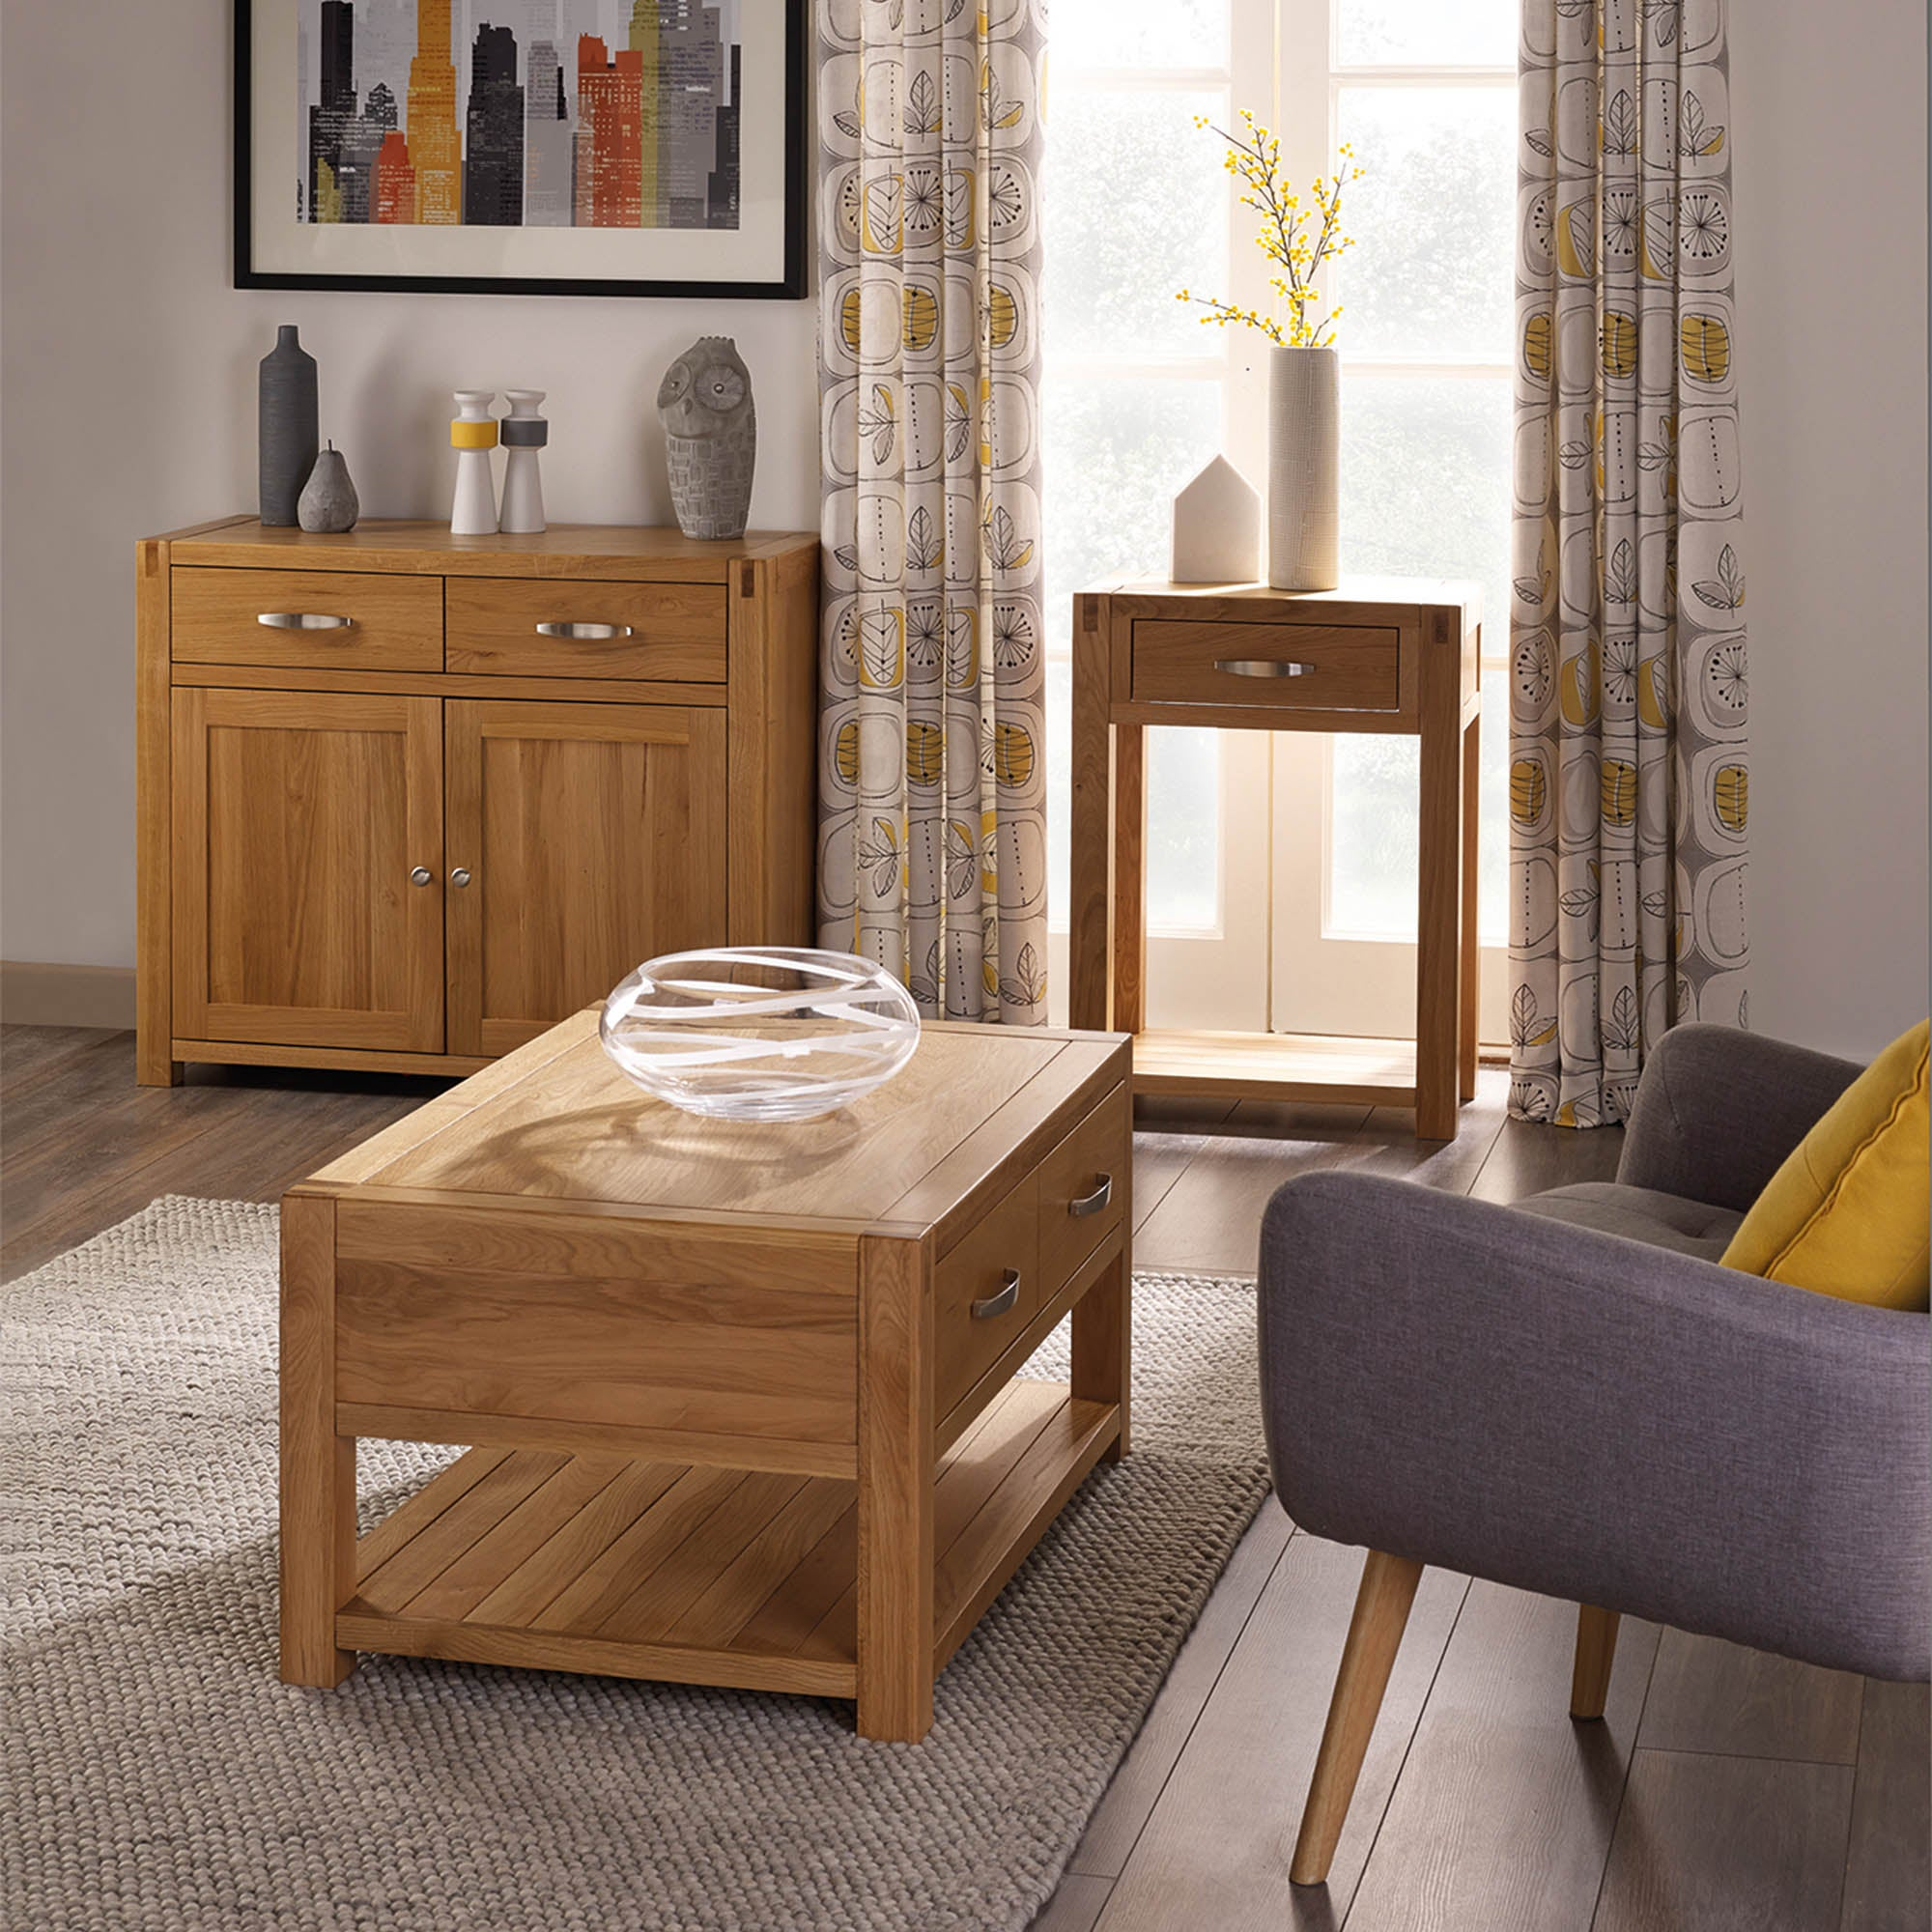 Living room ideas with oak furniture